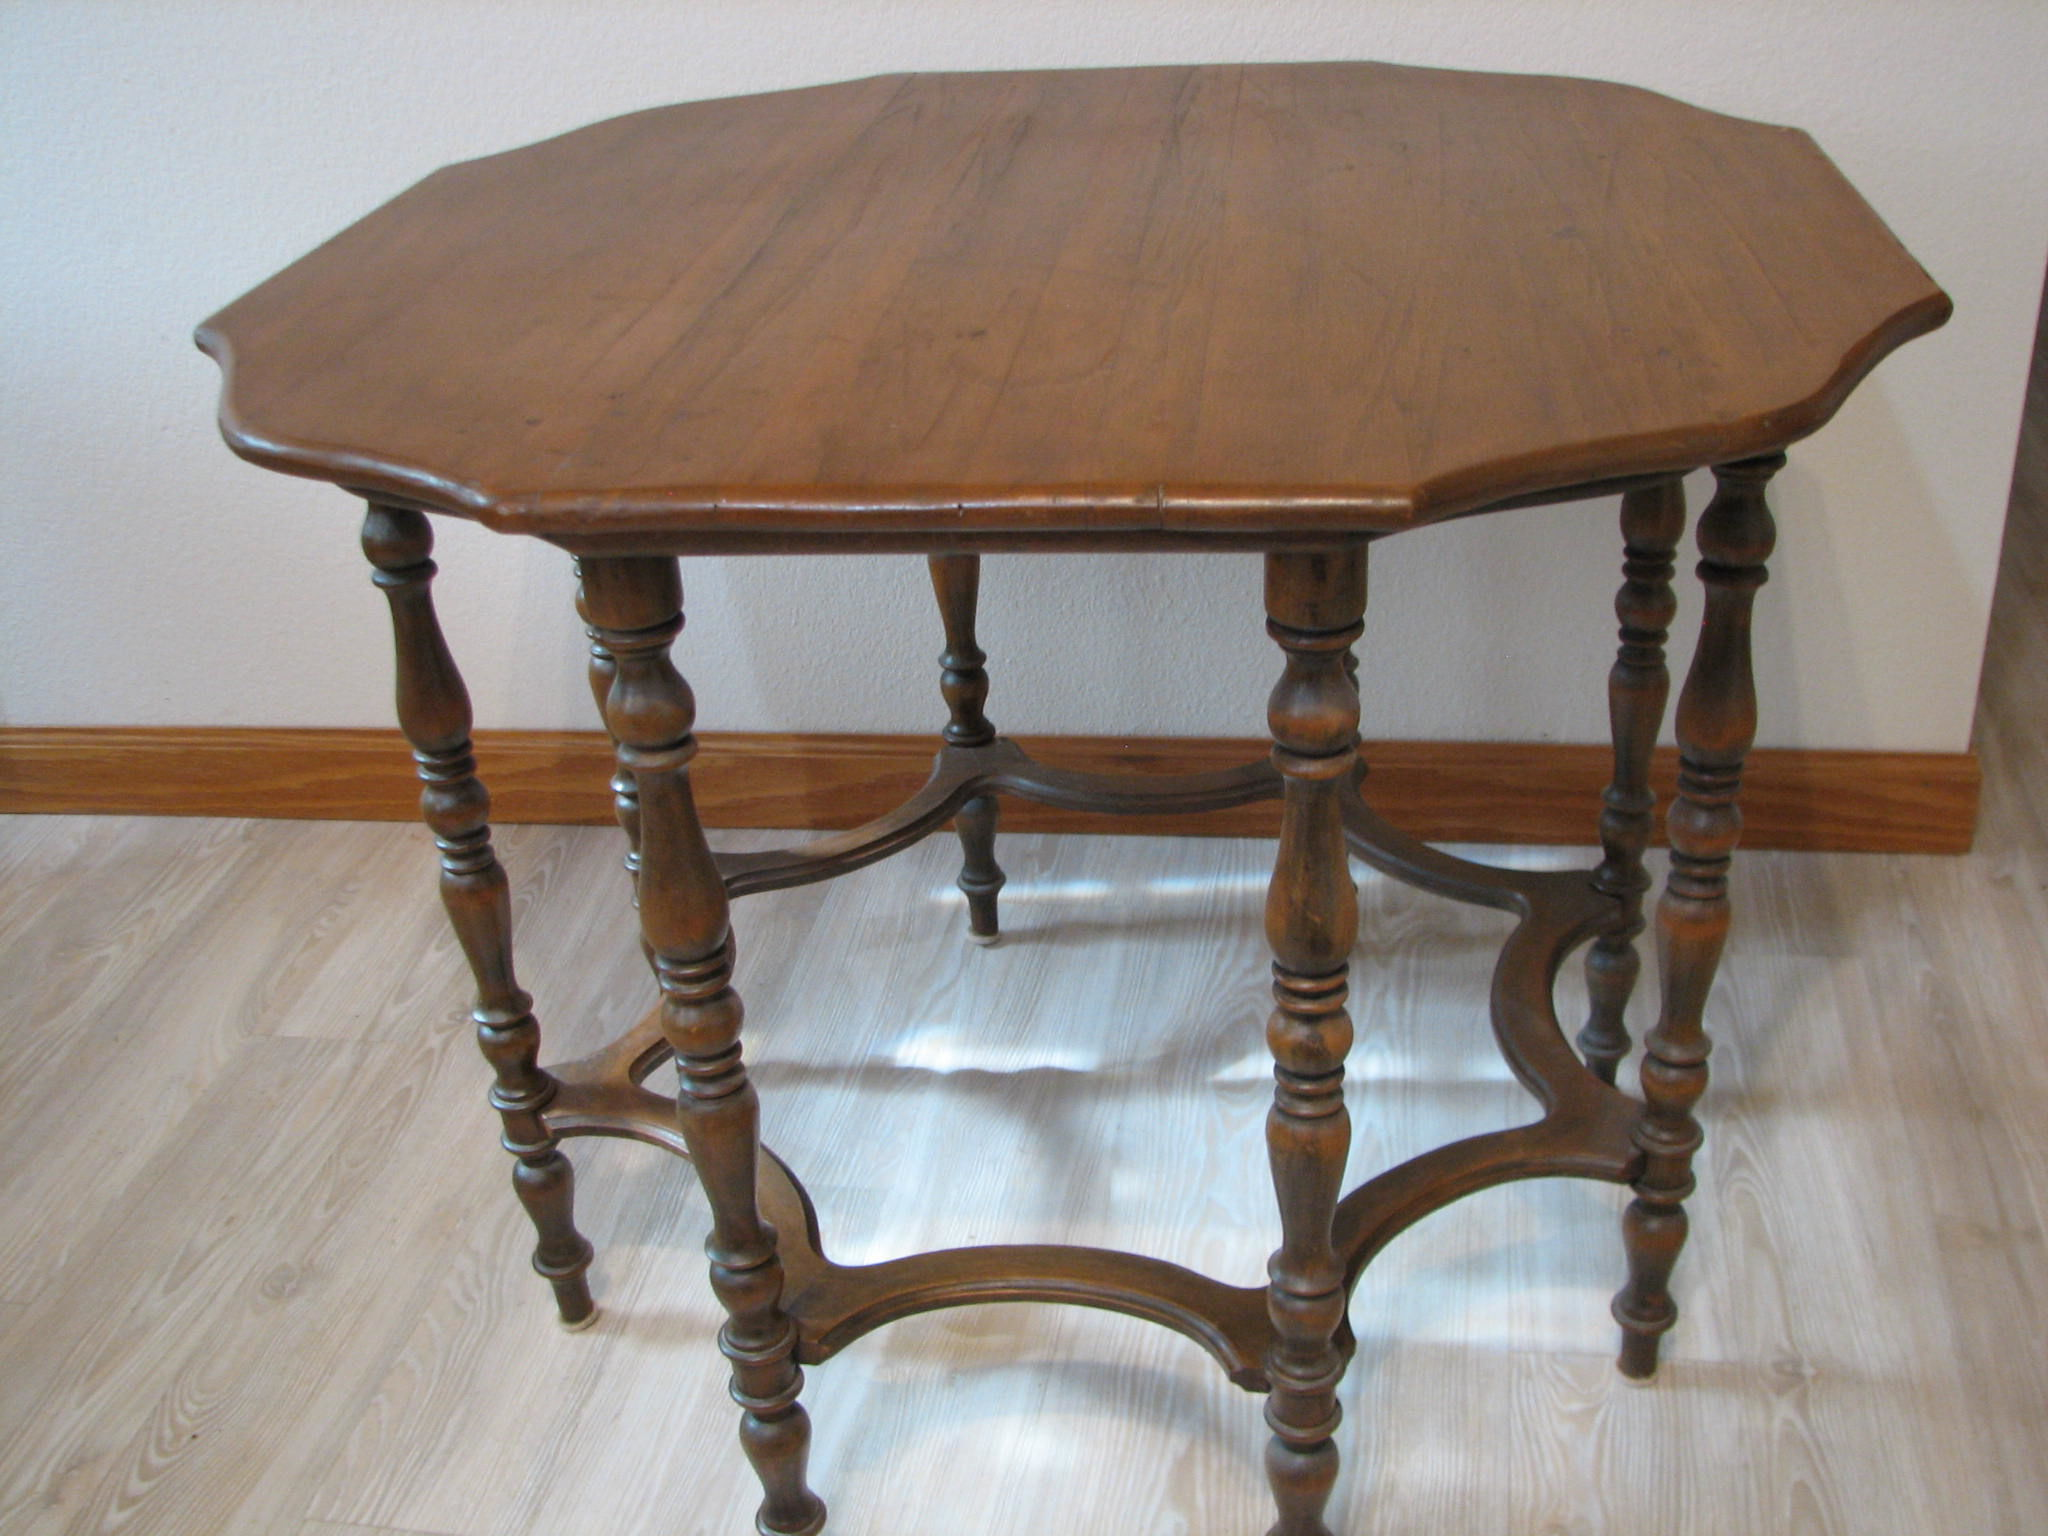 Antique Octagon Table image 1